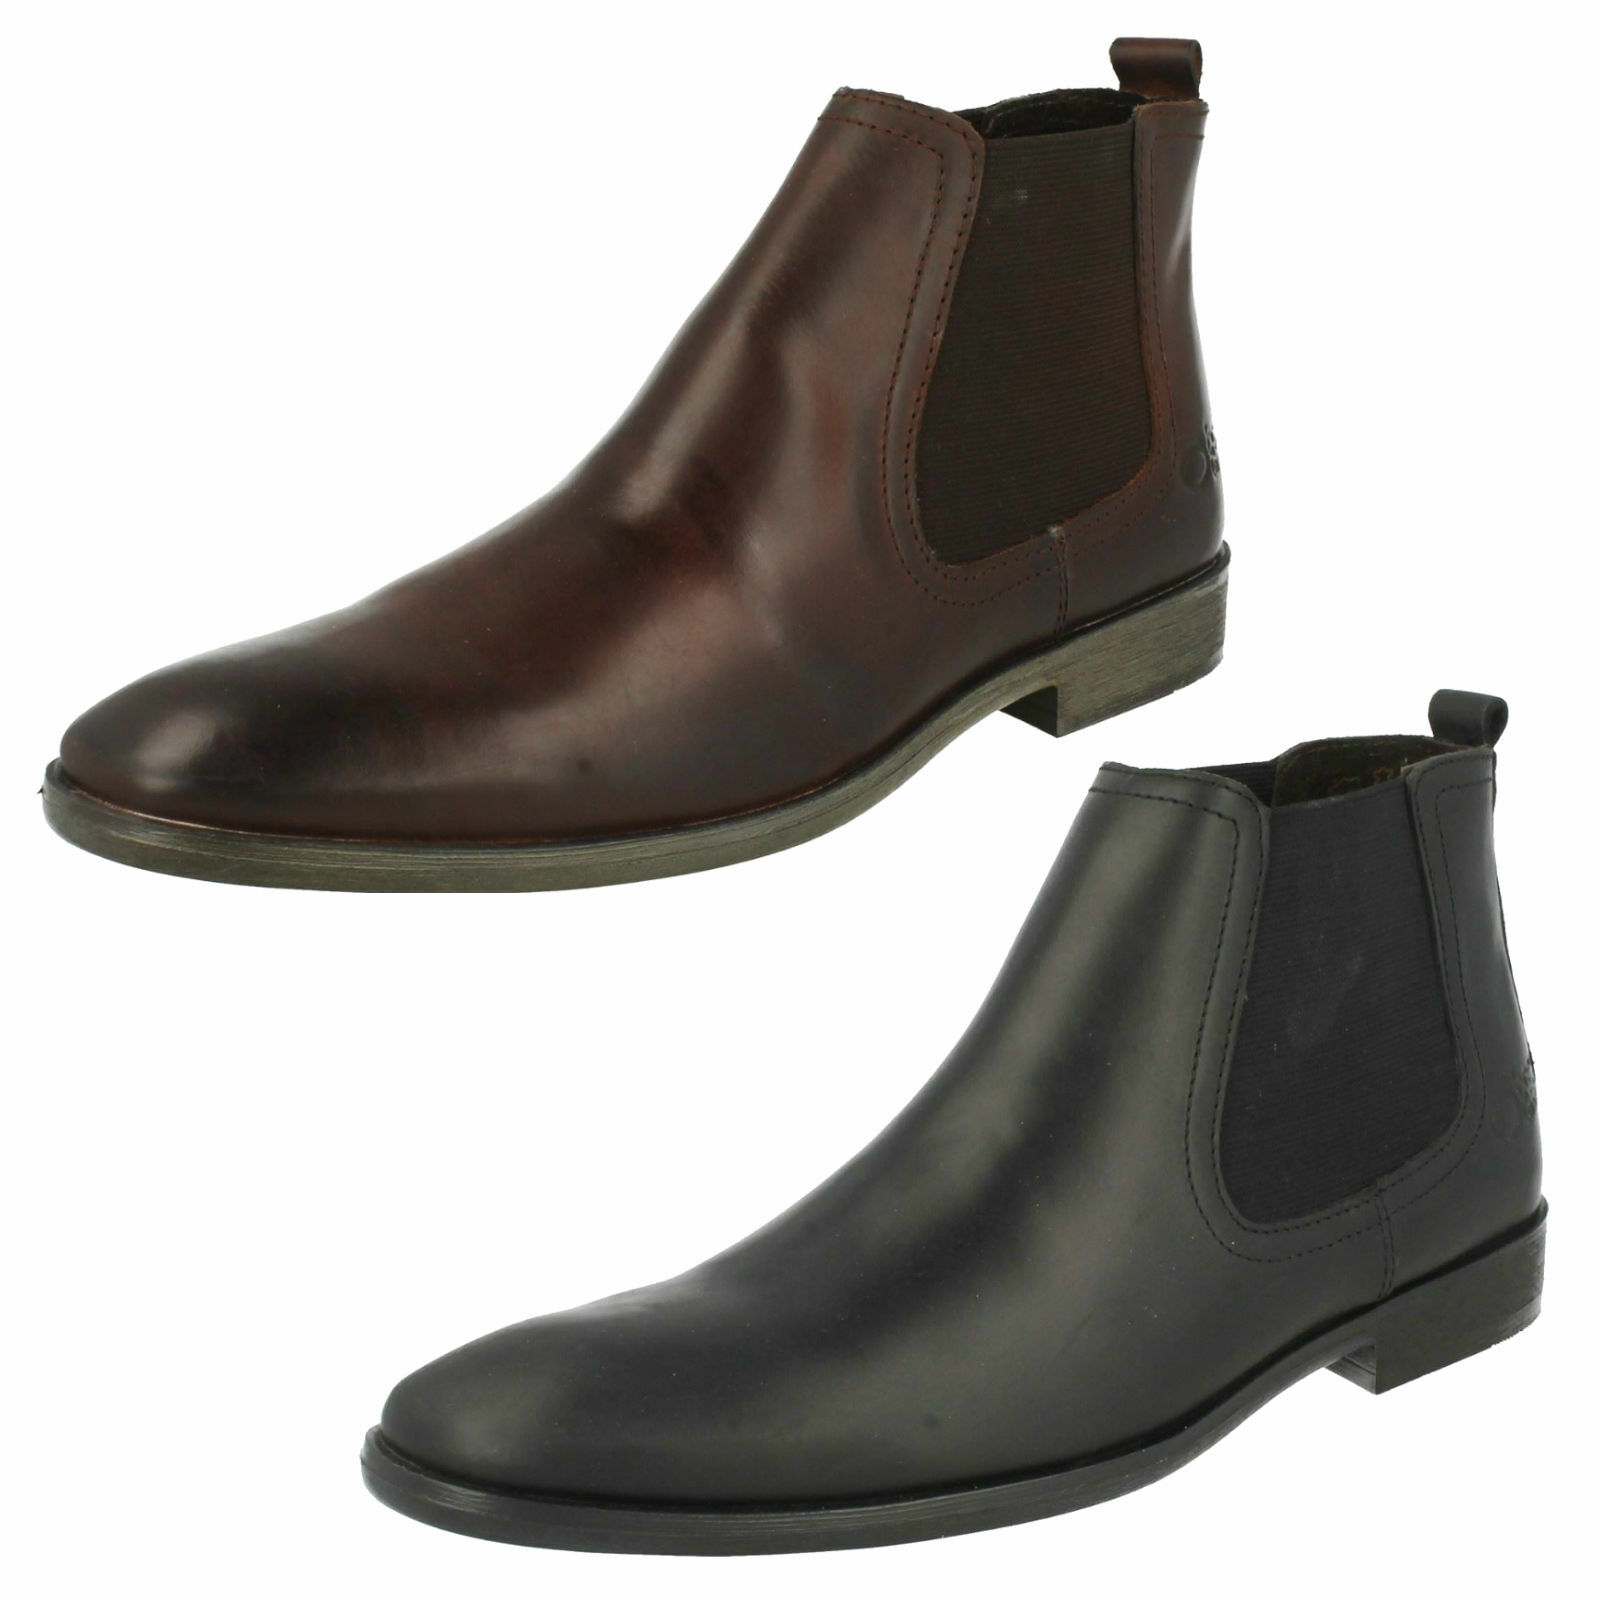 Mens SAFFRON waxy black / waxy brown boots By Base London £45.00